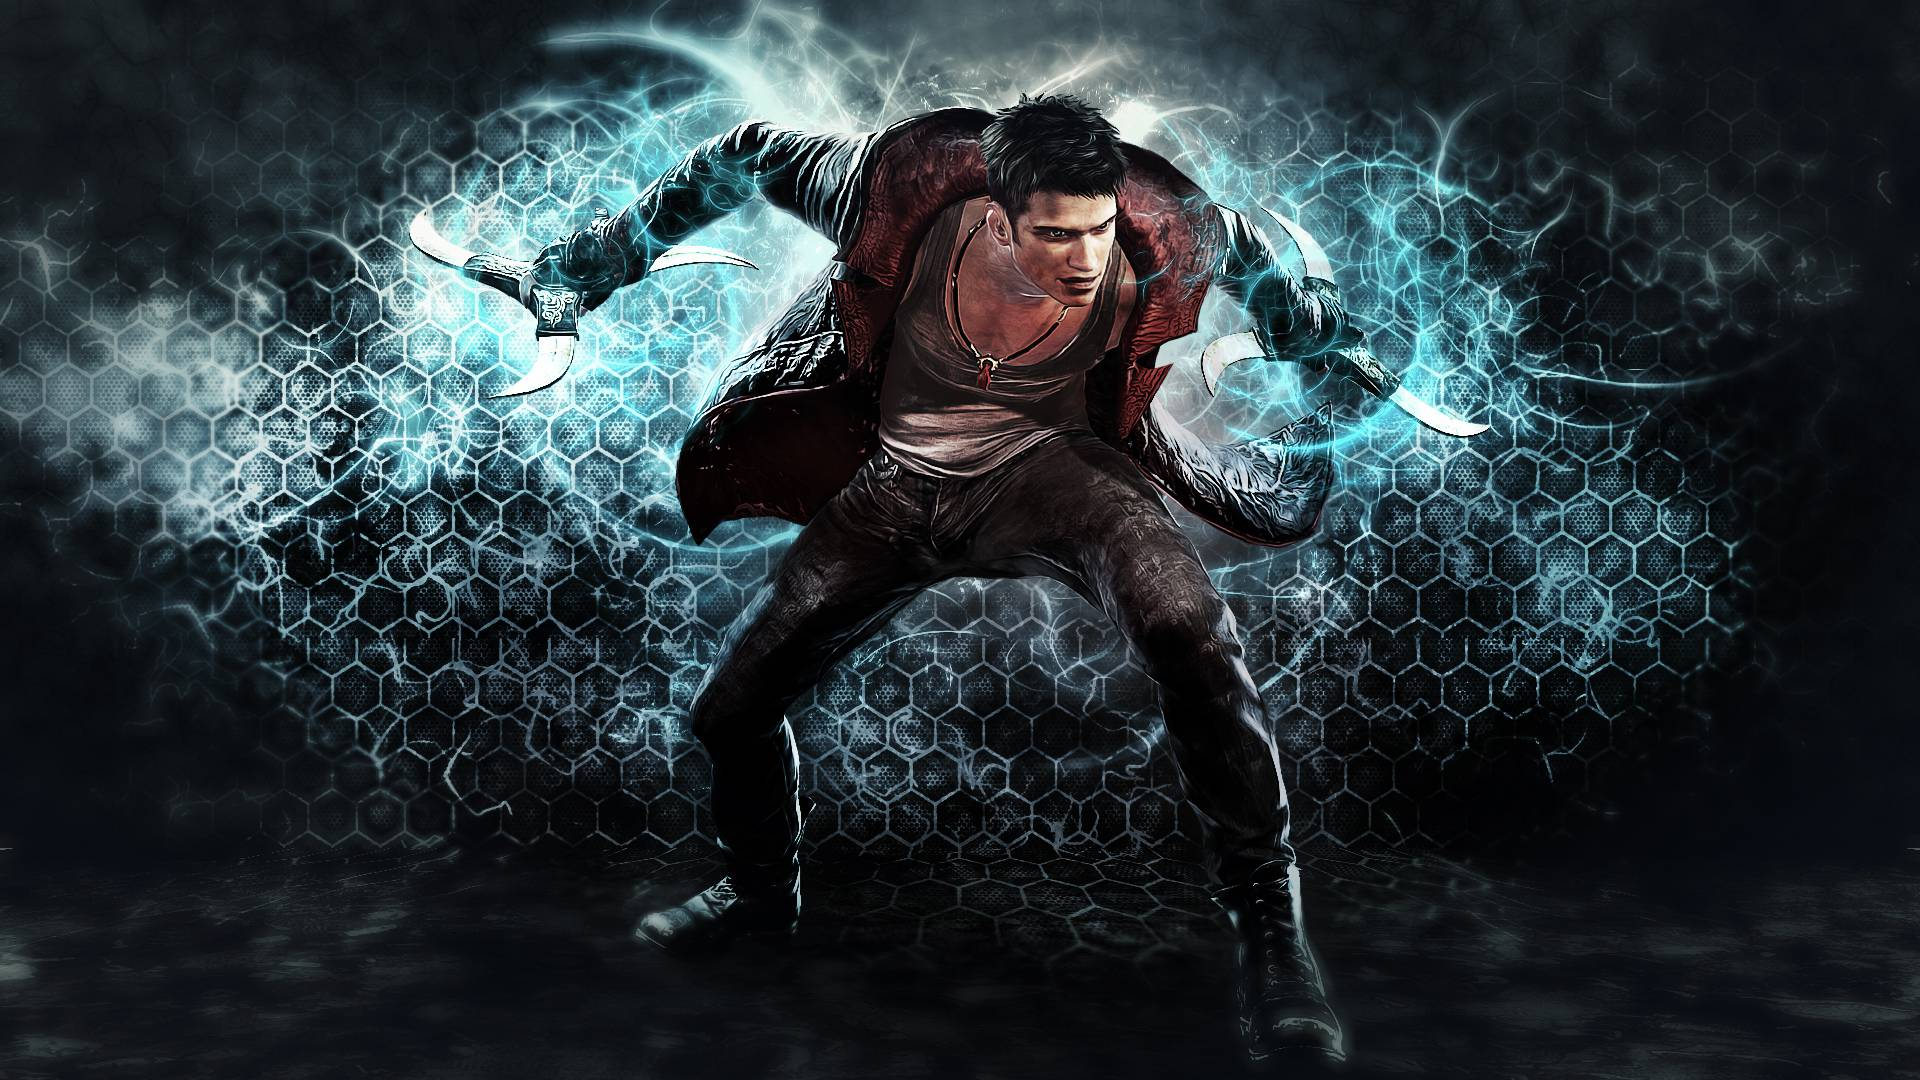 Devil may cry dante wallpapers wallpaper cave dante devil may cry 5 wallpaper 760764 voltagebd Images